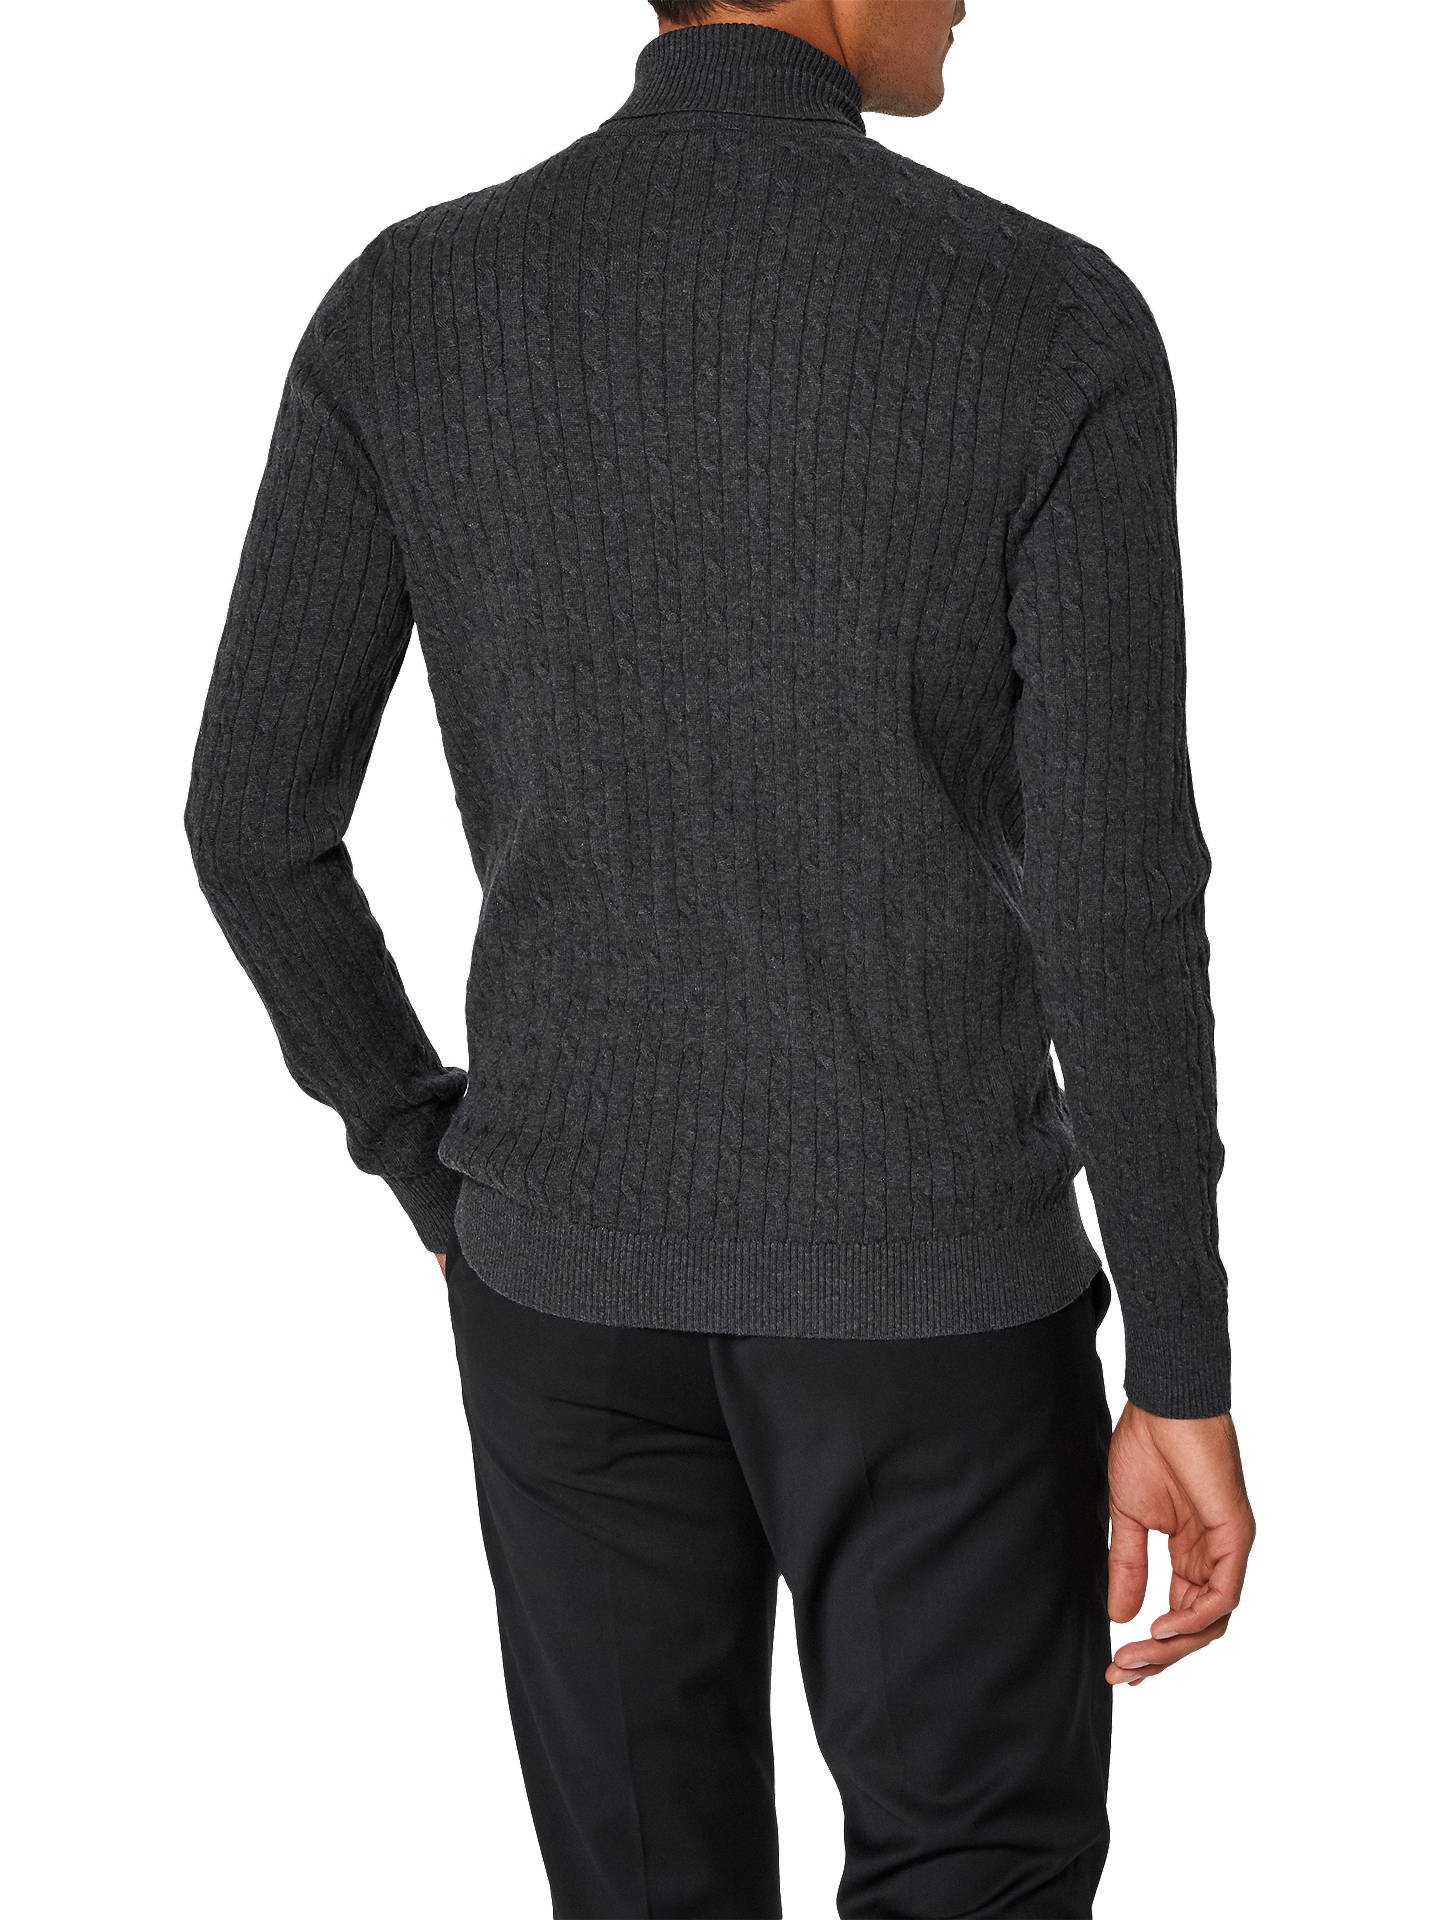 BuySelected Homme Clayton Organic Cotton Roll Neck Jumper, Anthracite, S Online at johnlewis.com